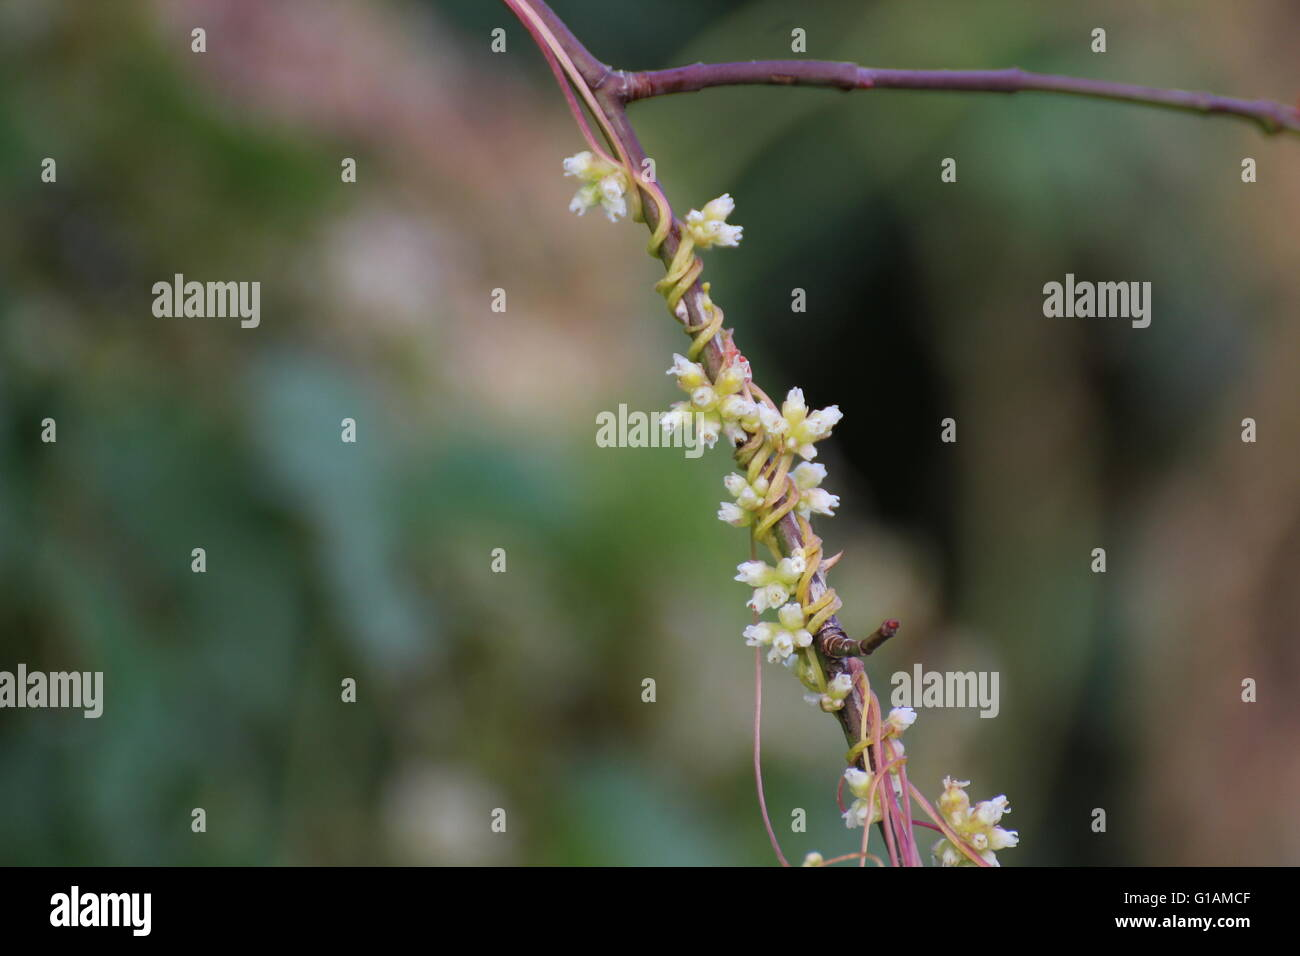 Stems and blossoms of the clover dodder (Cuscuta epithymum) growing on rose. - Stock Image